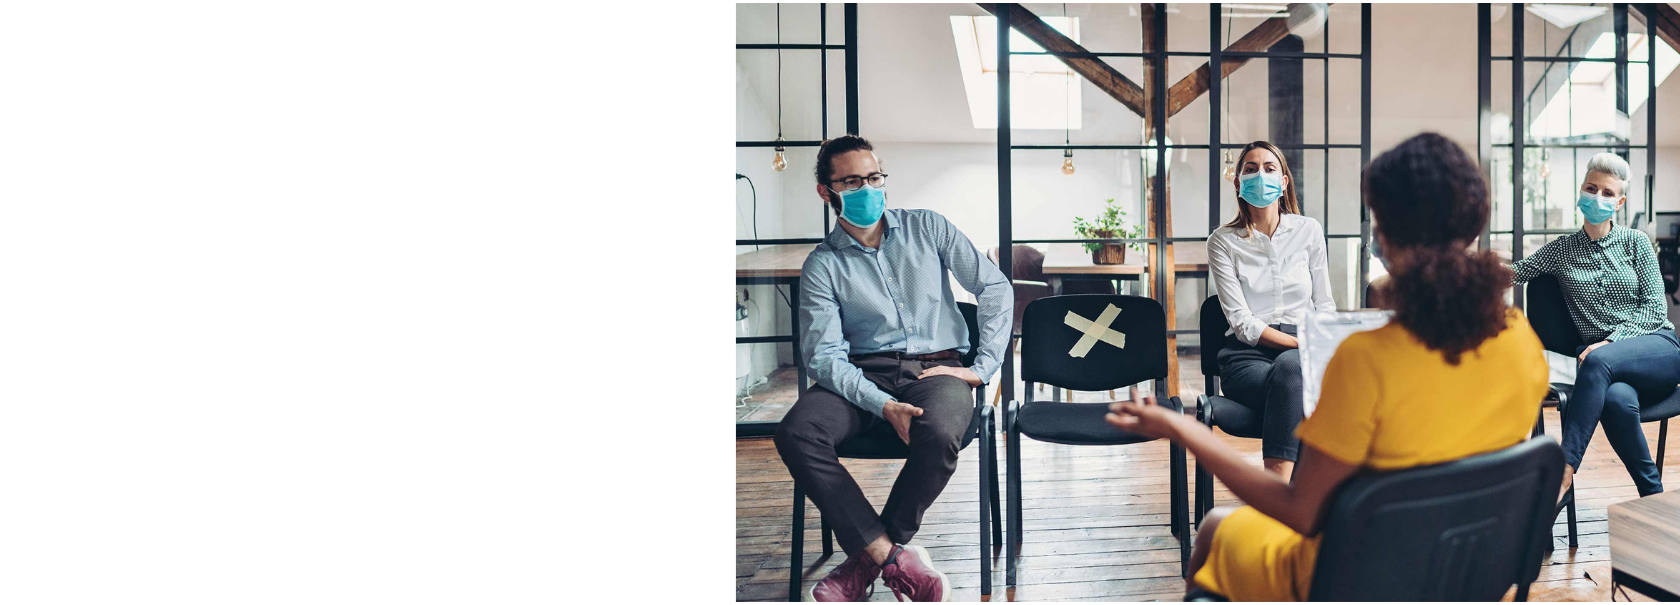 eVideo Communications has new Collaboration Tools as the global pandemic continues to  provide collaboration solutions